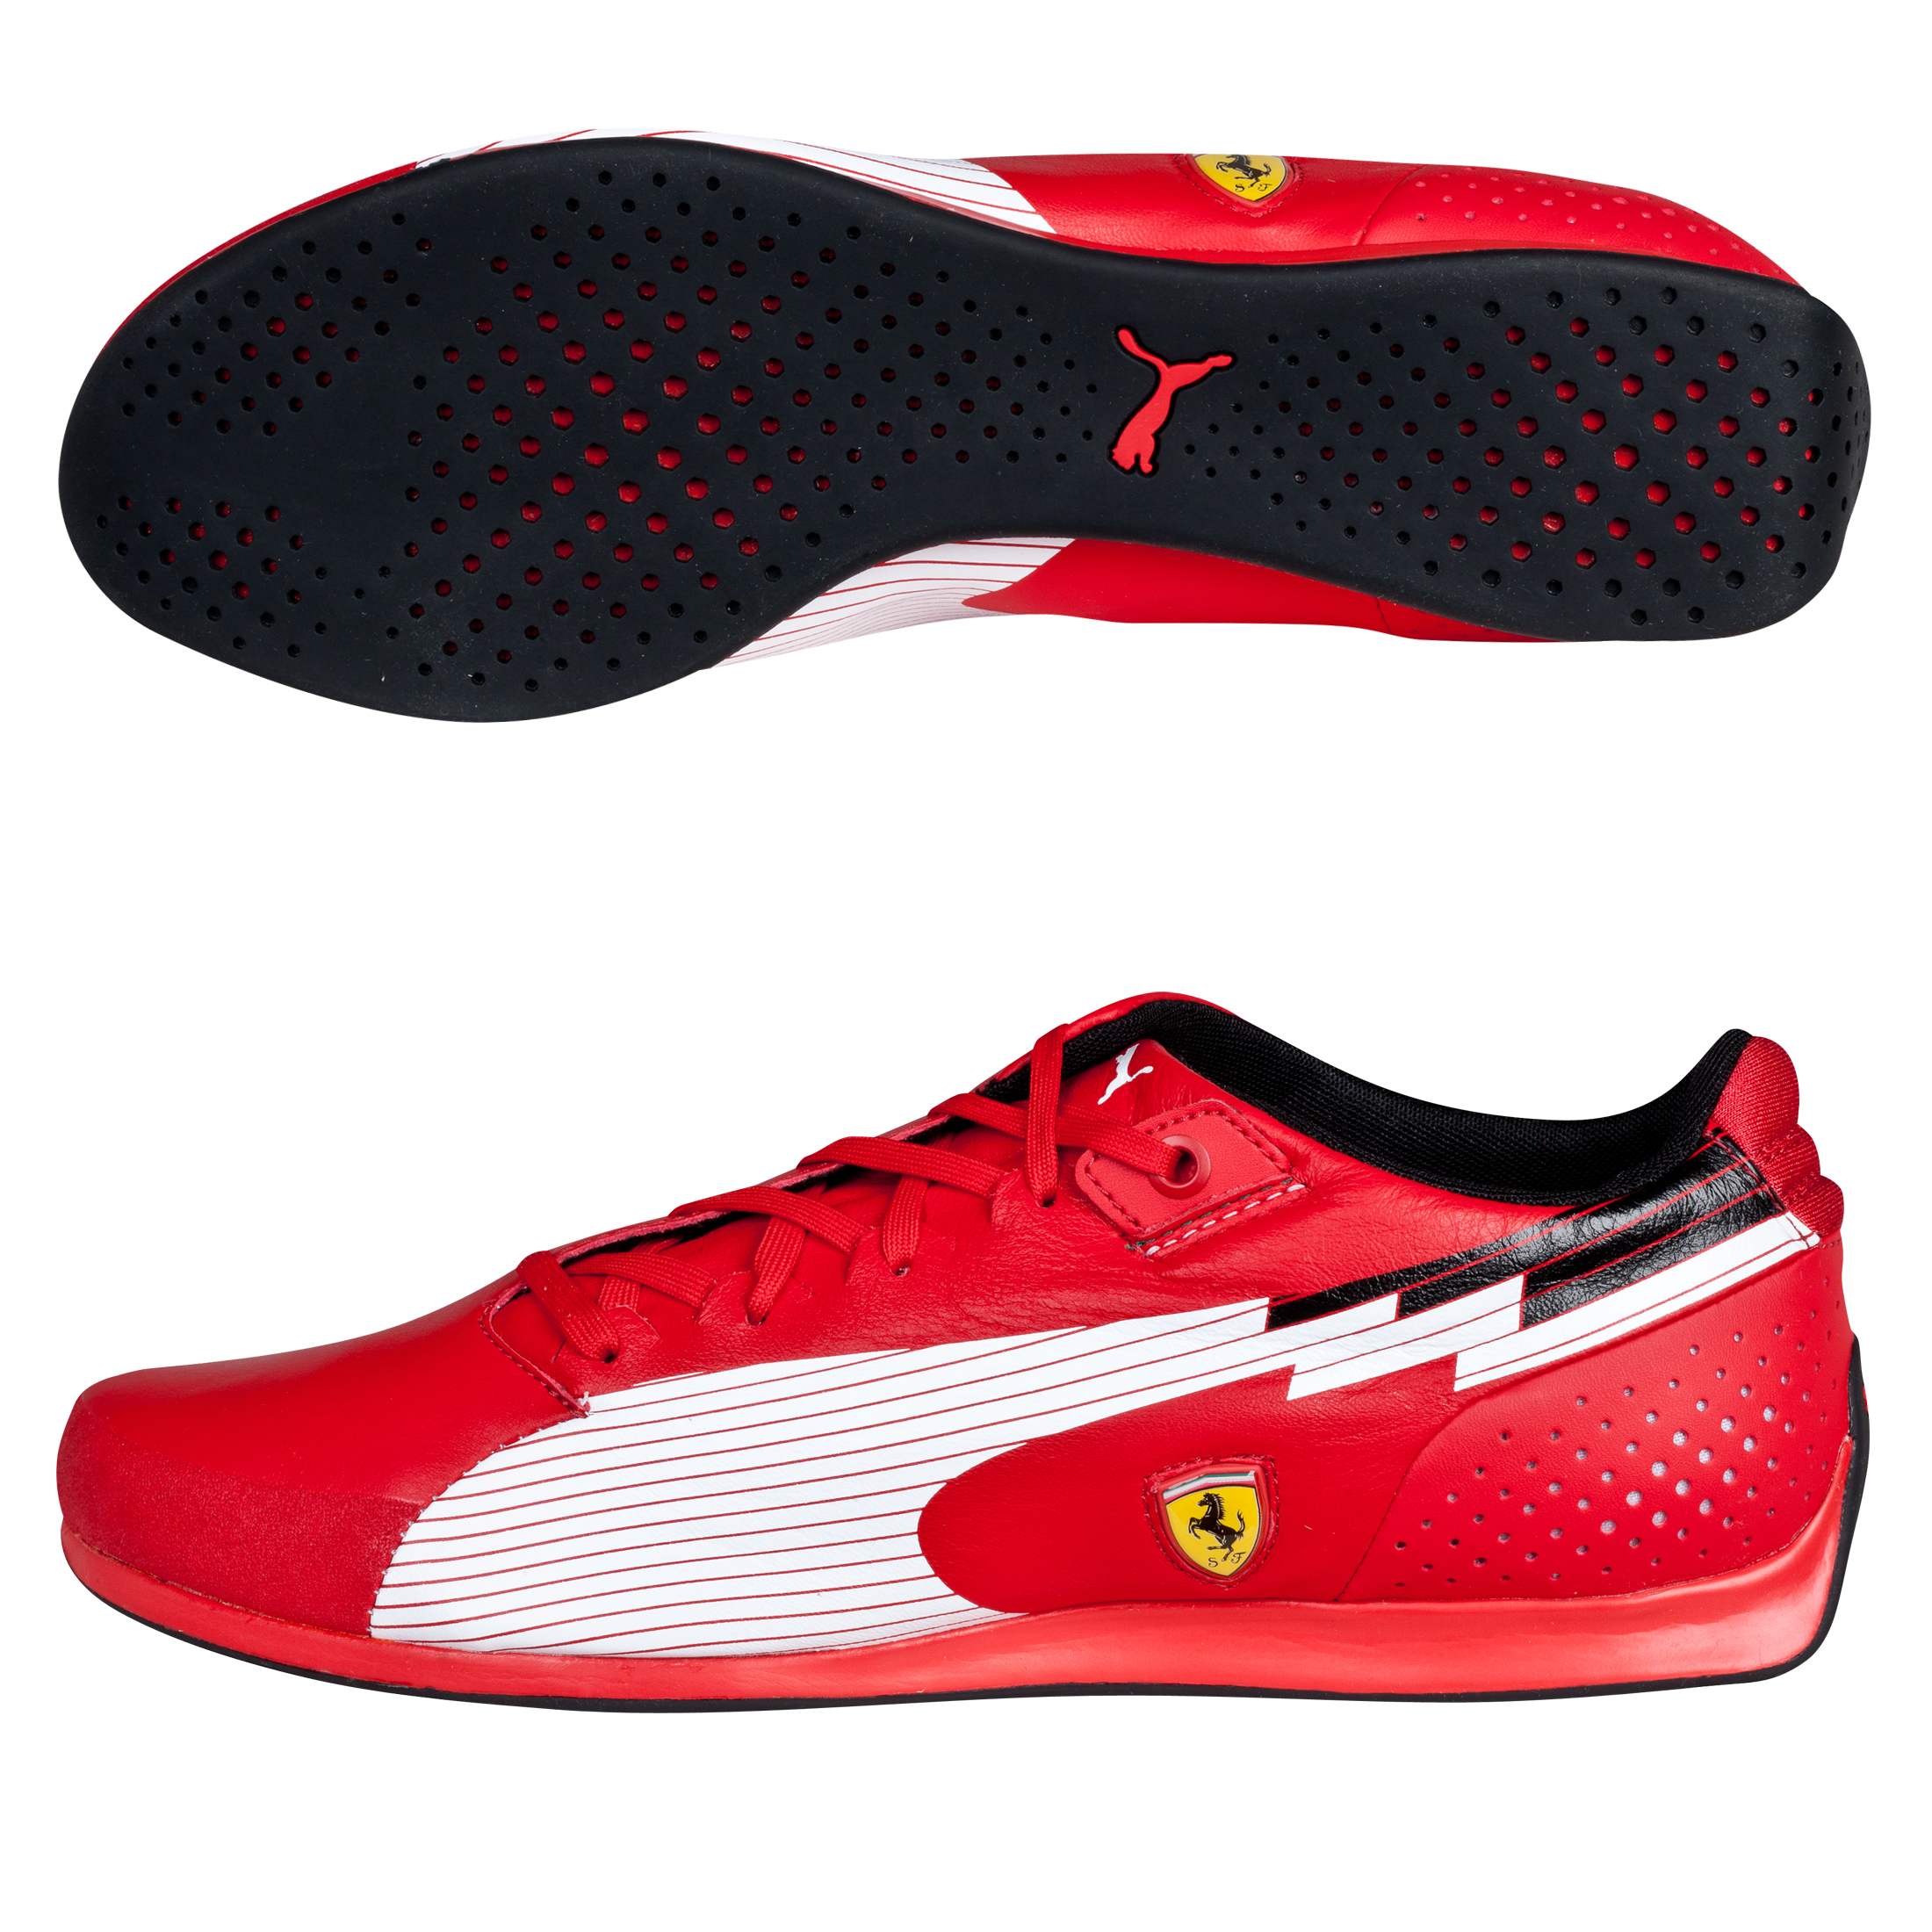 Scuderia Ferrari EvoSpeed Lo - Rosso Corsa/White